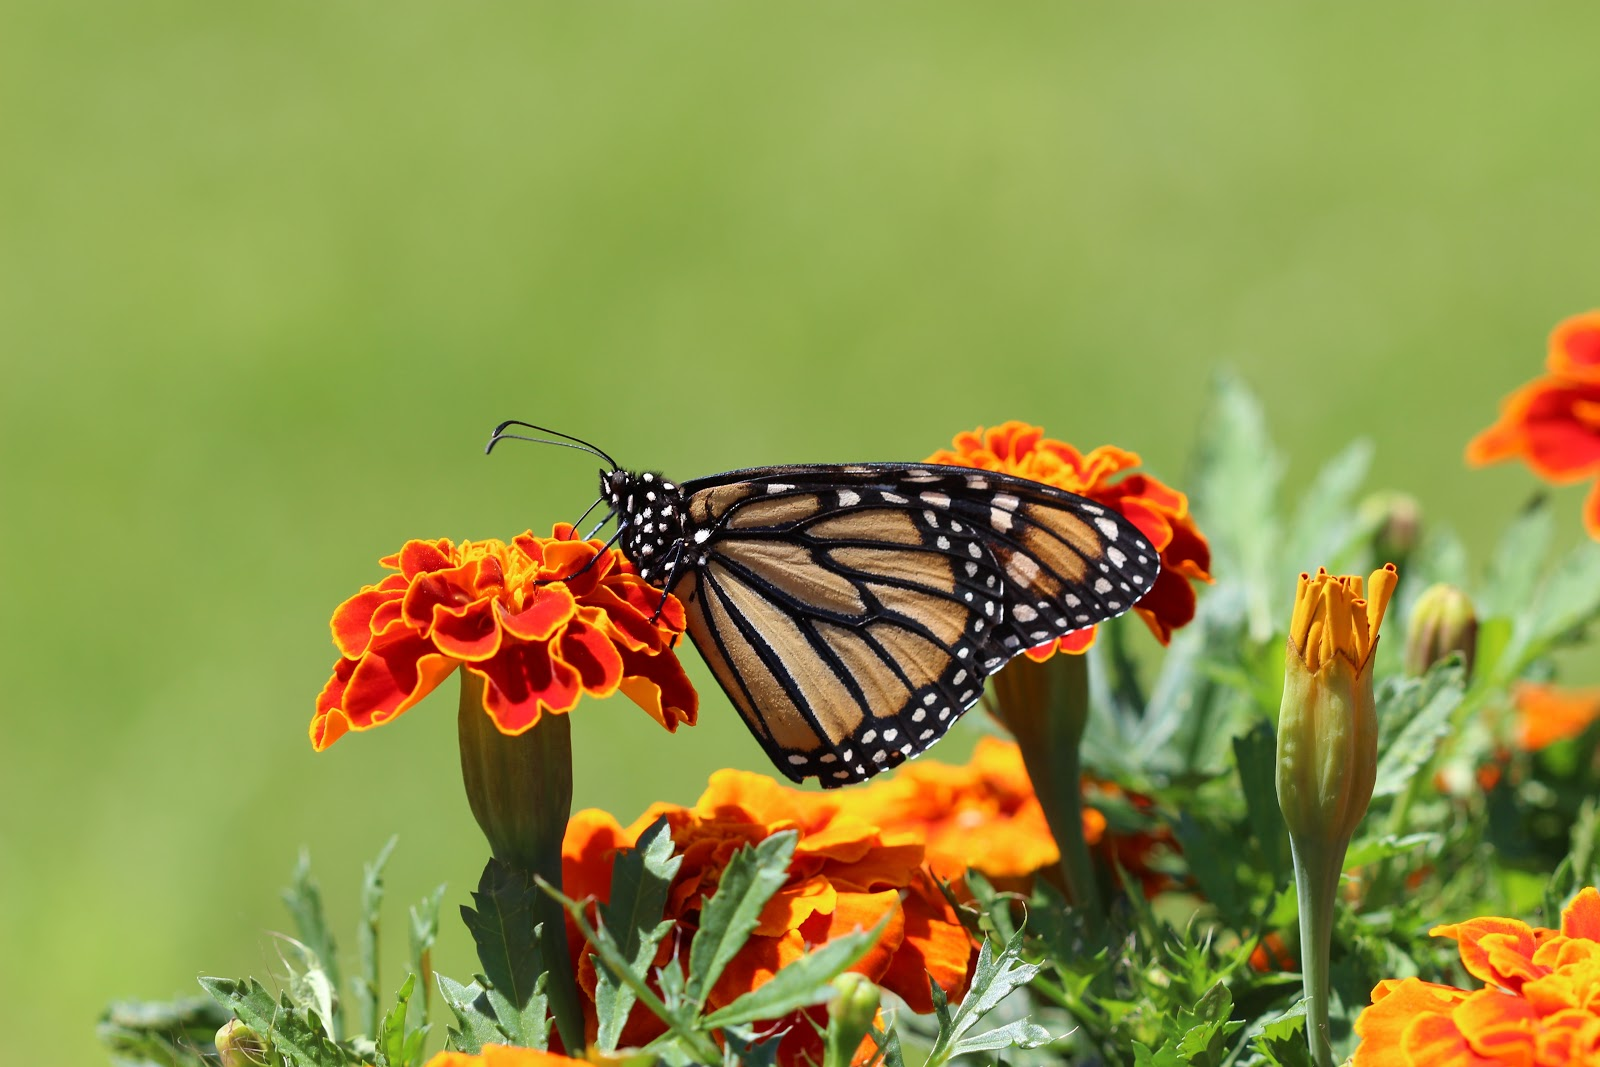 selective-focus-photography-of-monarch-butterfly-perched-on-images